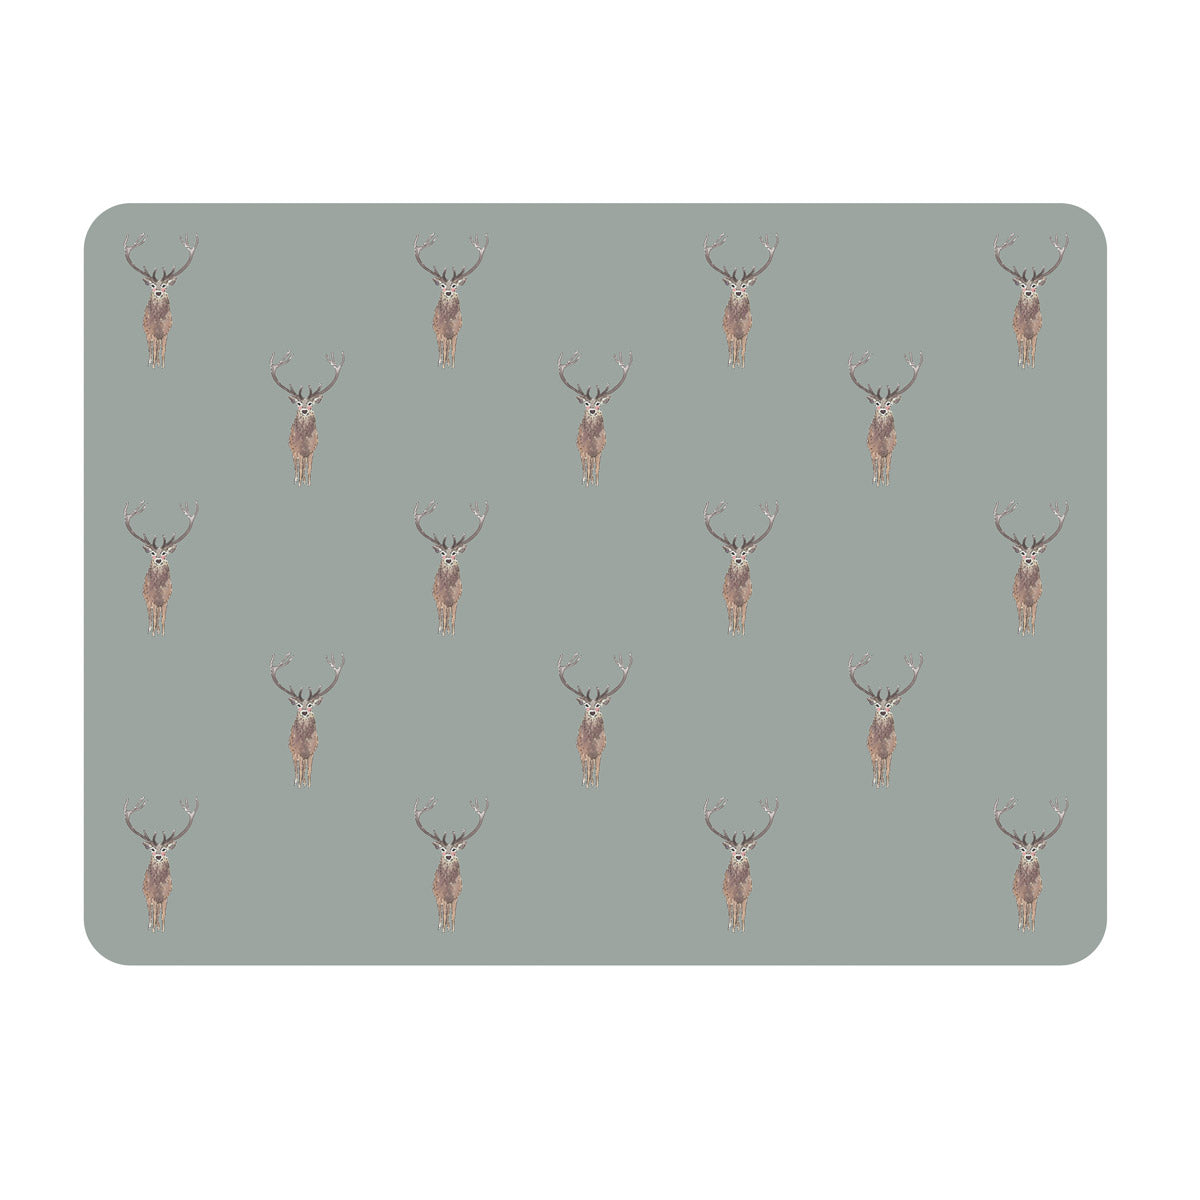 Highland Stag Placemats